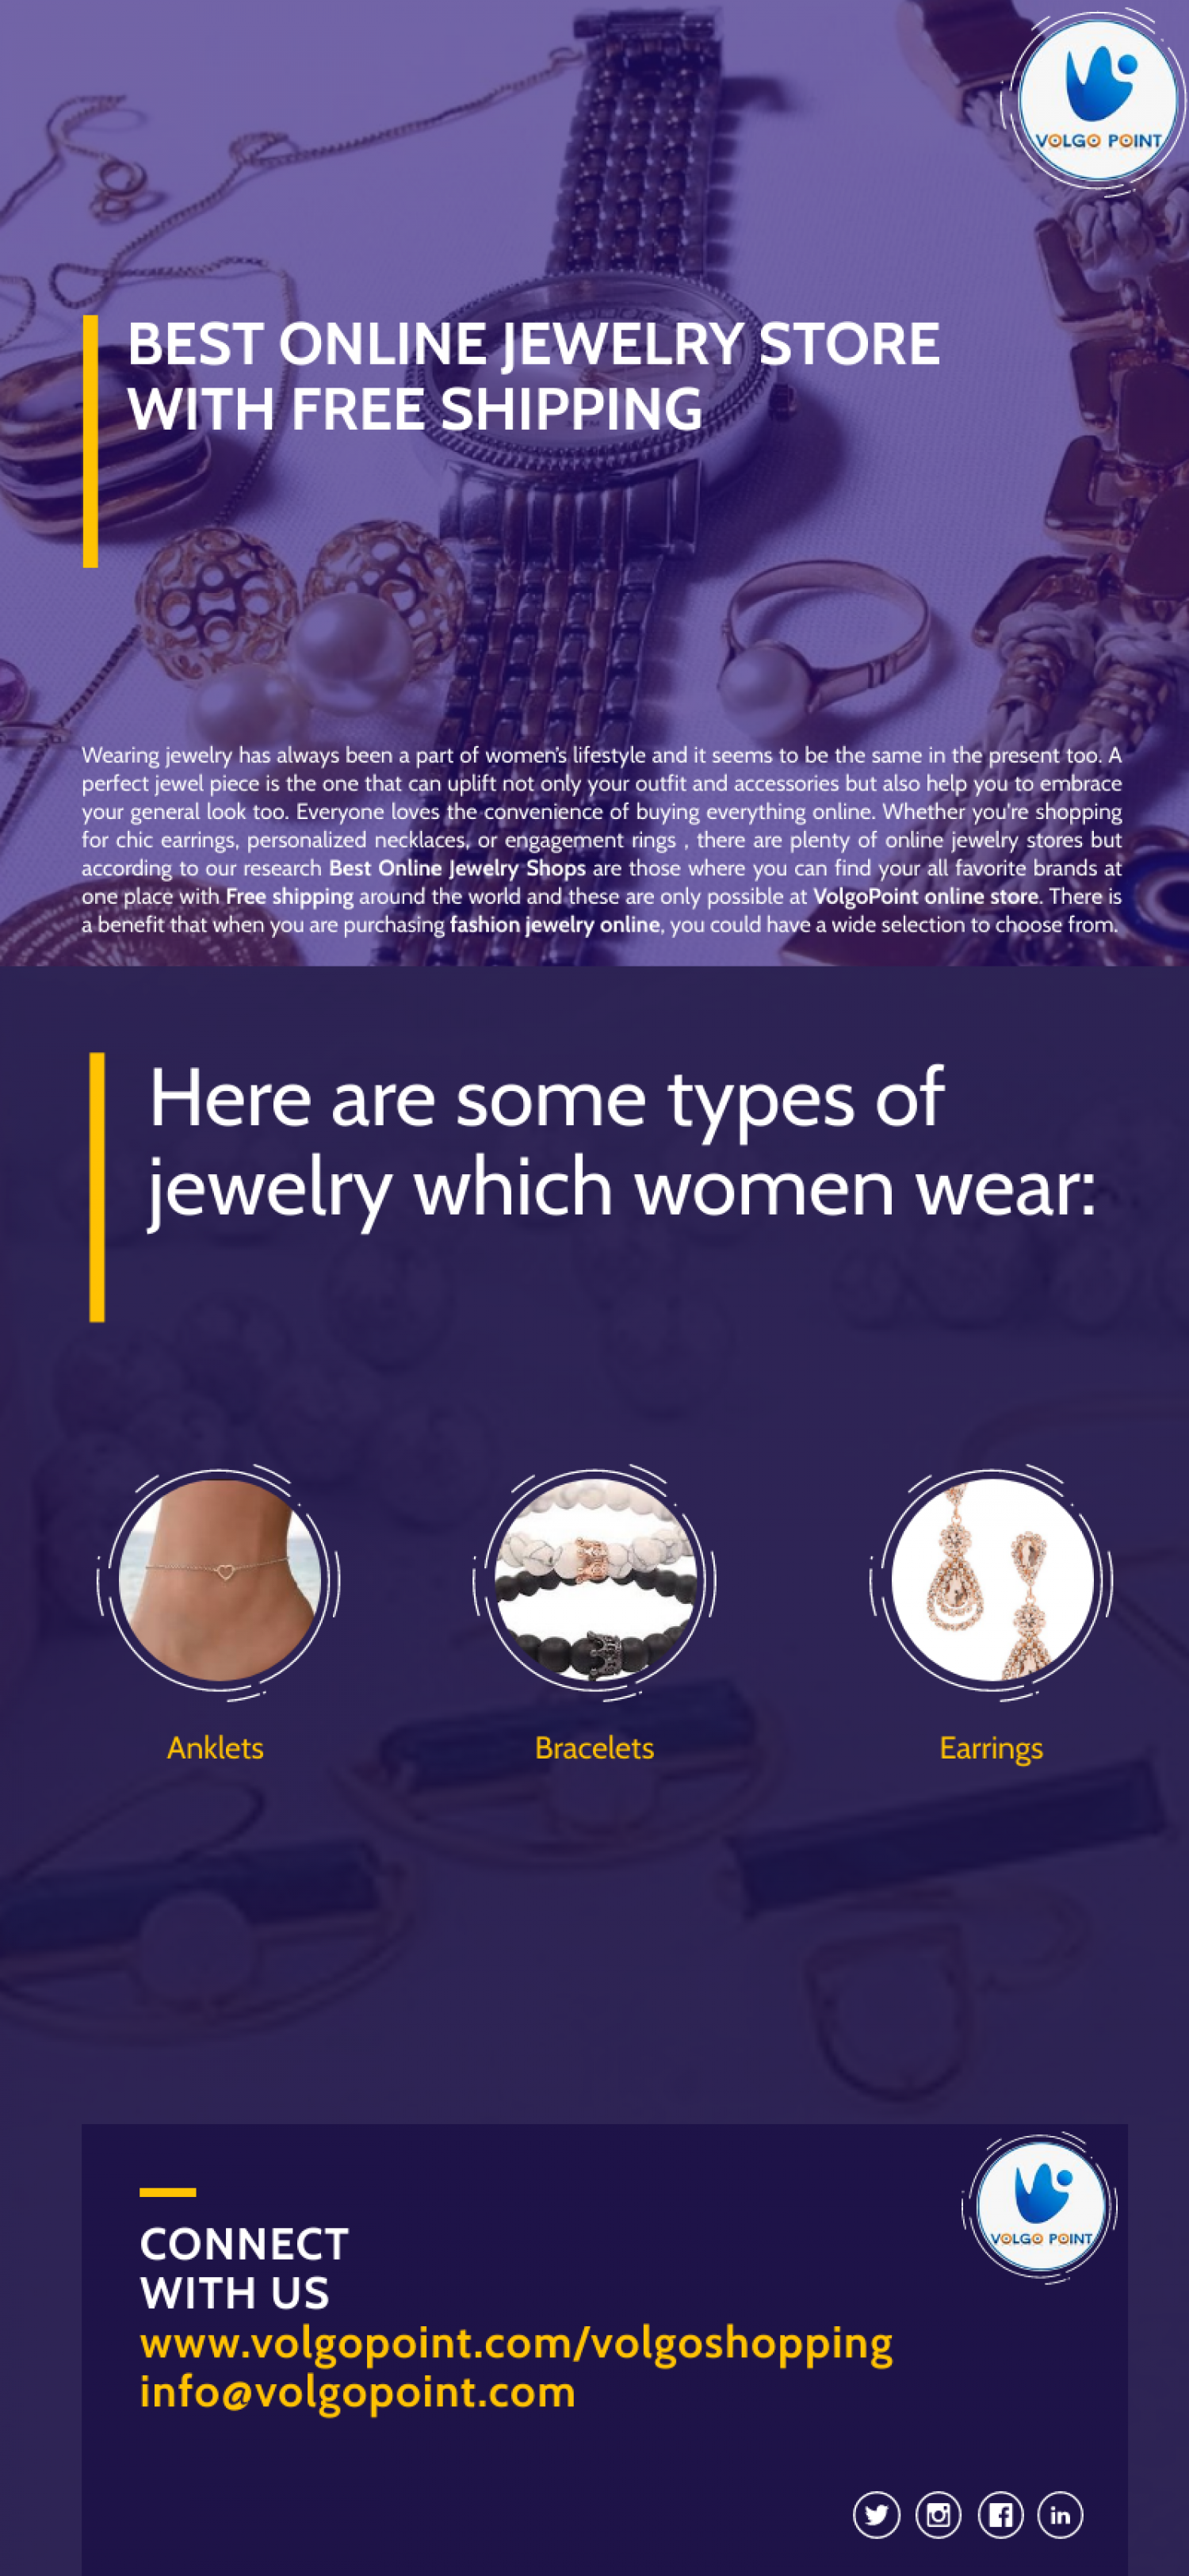 Best Online Jewelry Shops Infographic